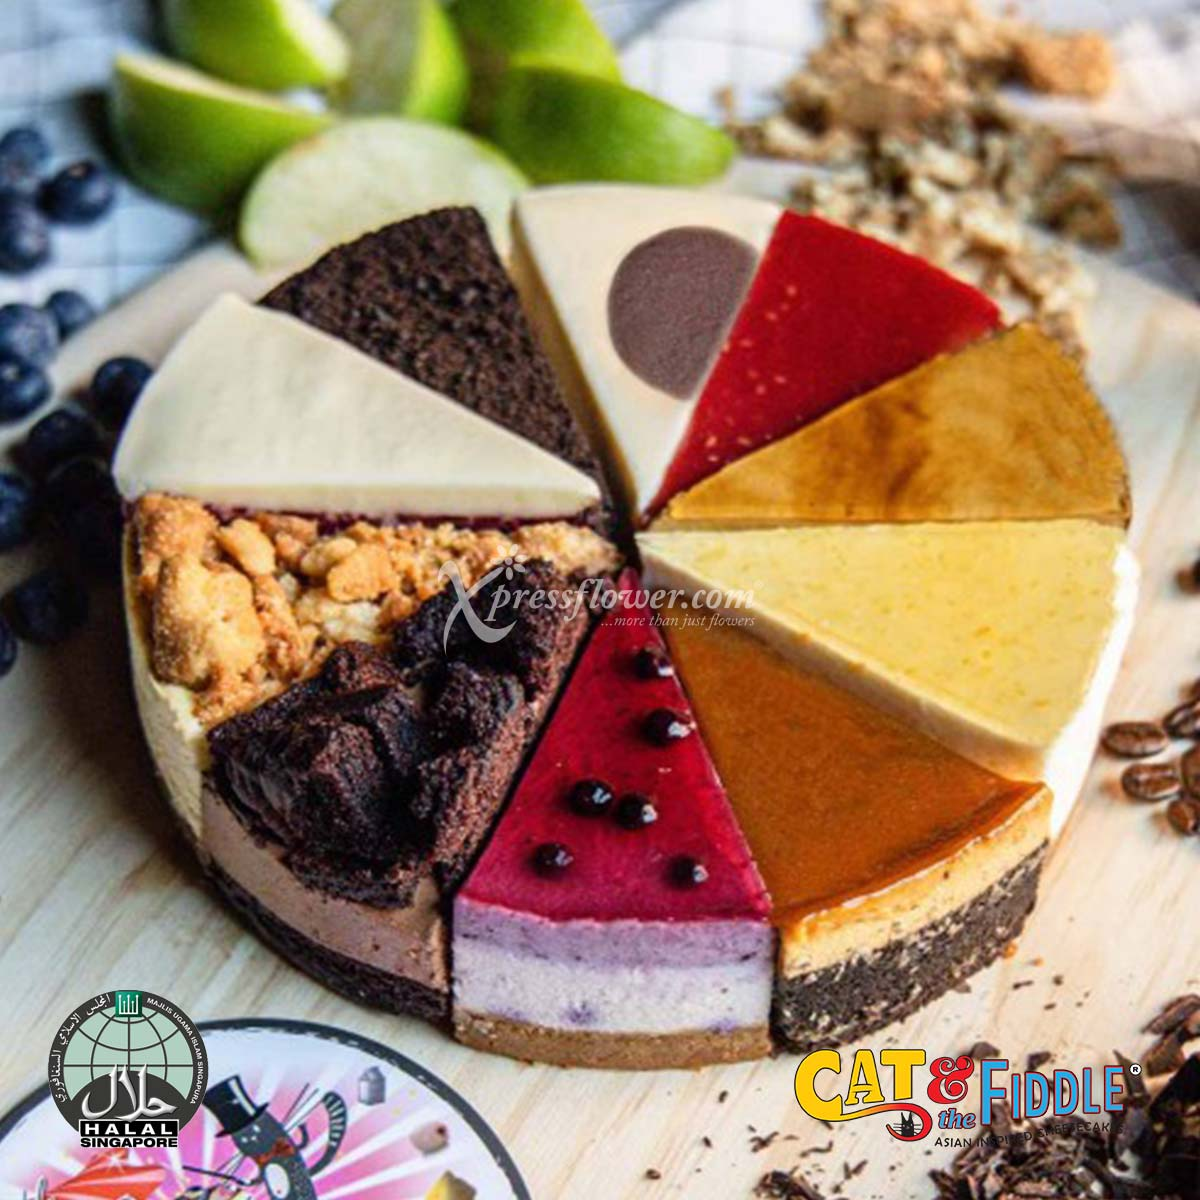 Fickle Feline 2.0 10 Flavour Assorted Cheesecake (Cat & The Fiddle)